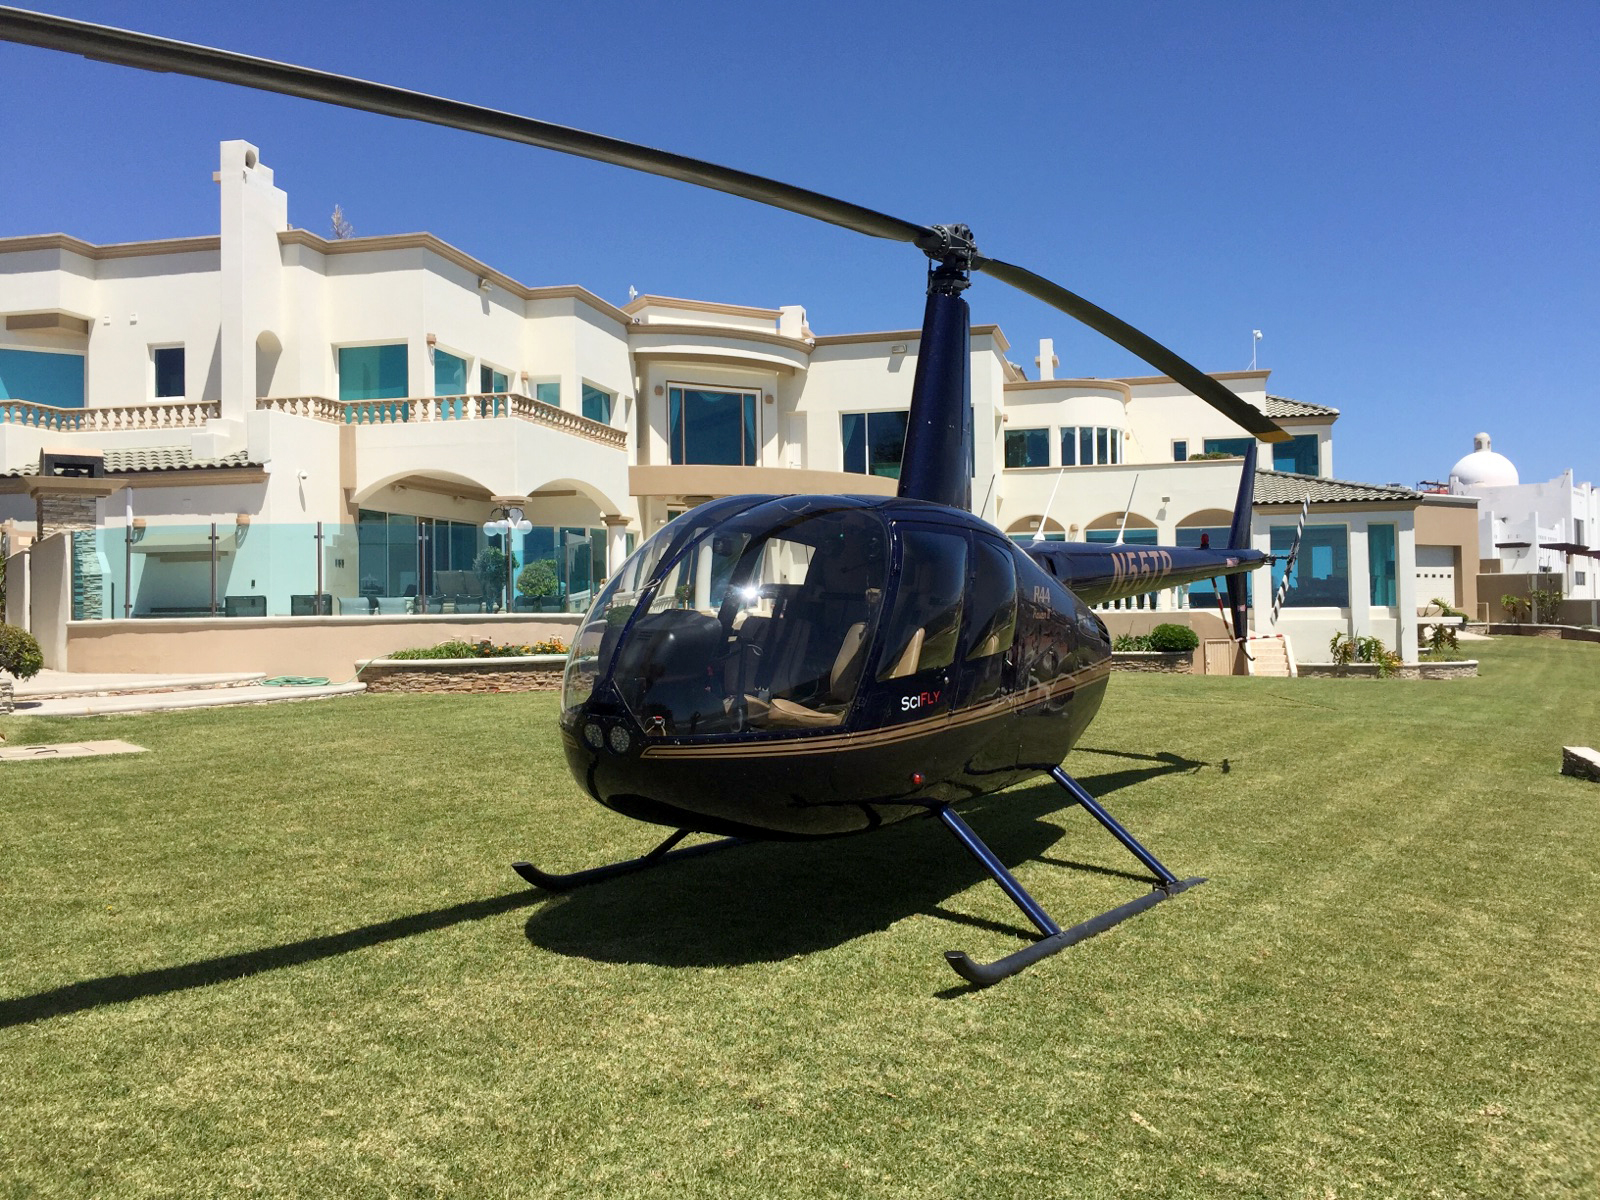 air bnb wedding venue mexican beachfront mansion with helicopter on lawn